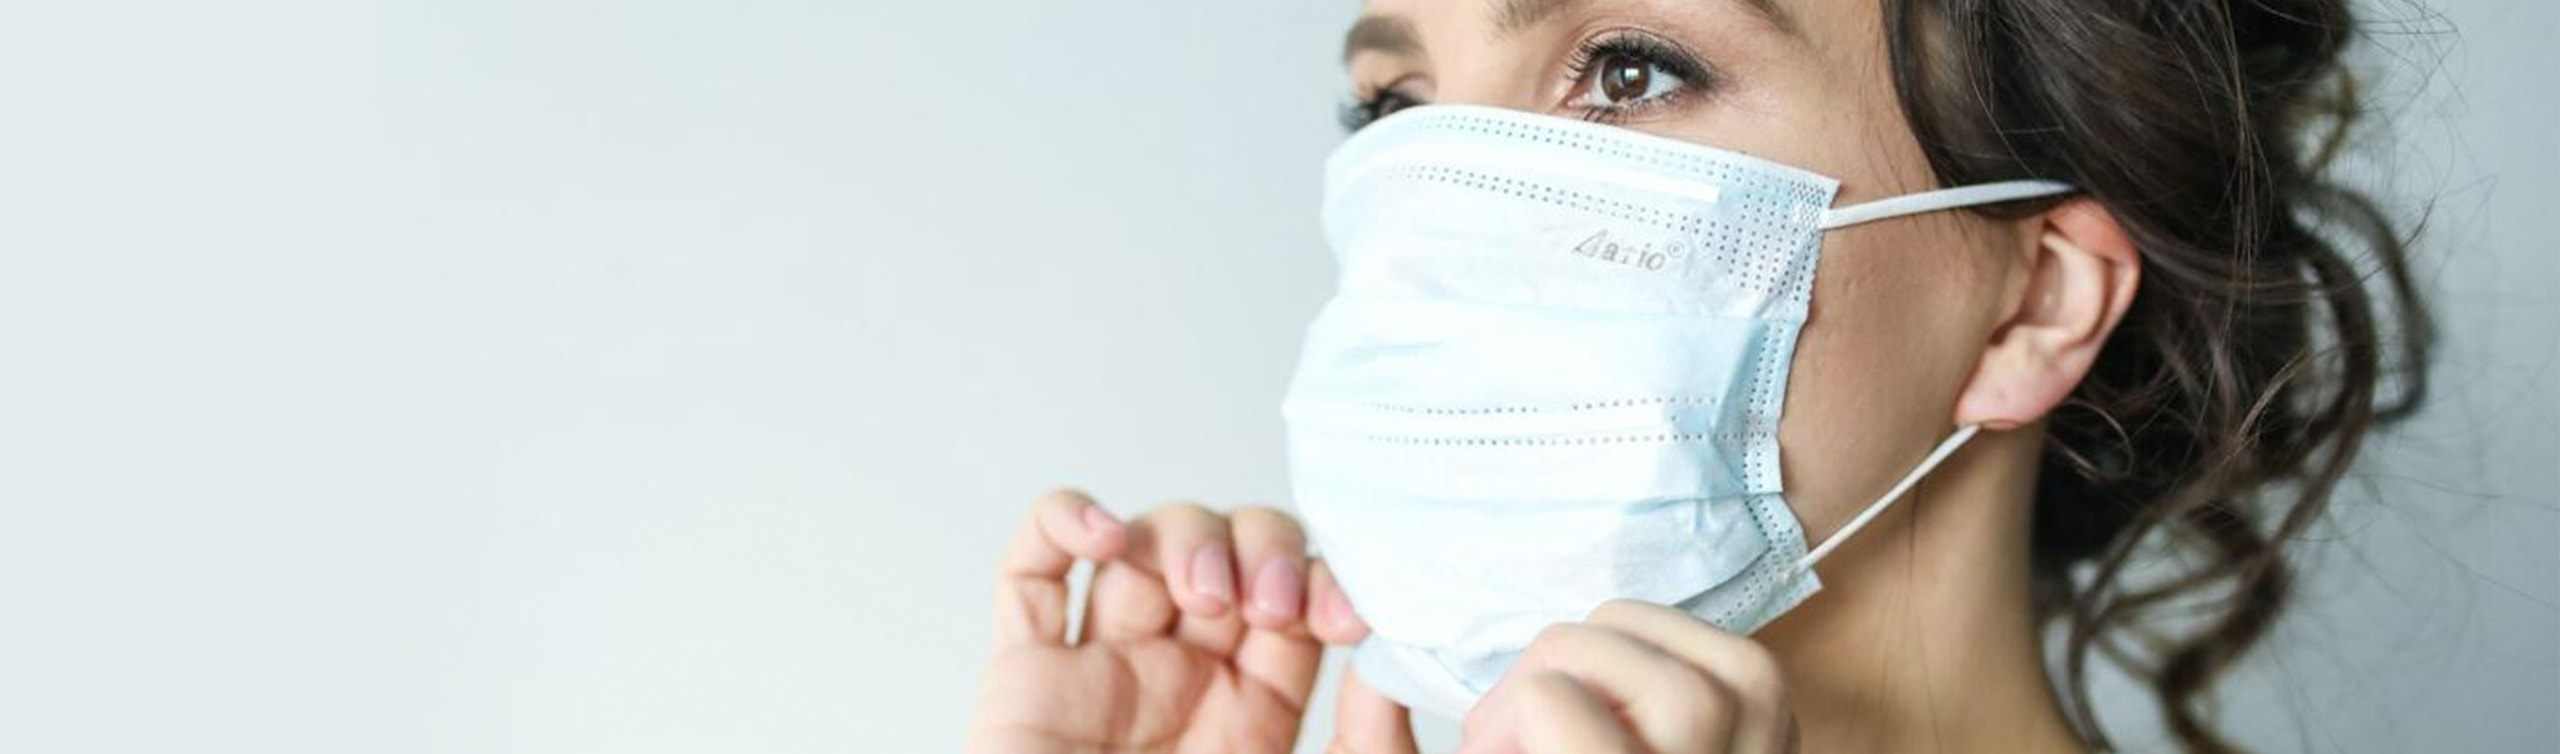 woman wearing a mask to protect against covid